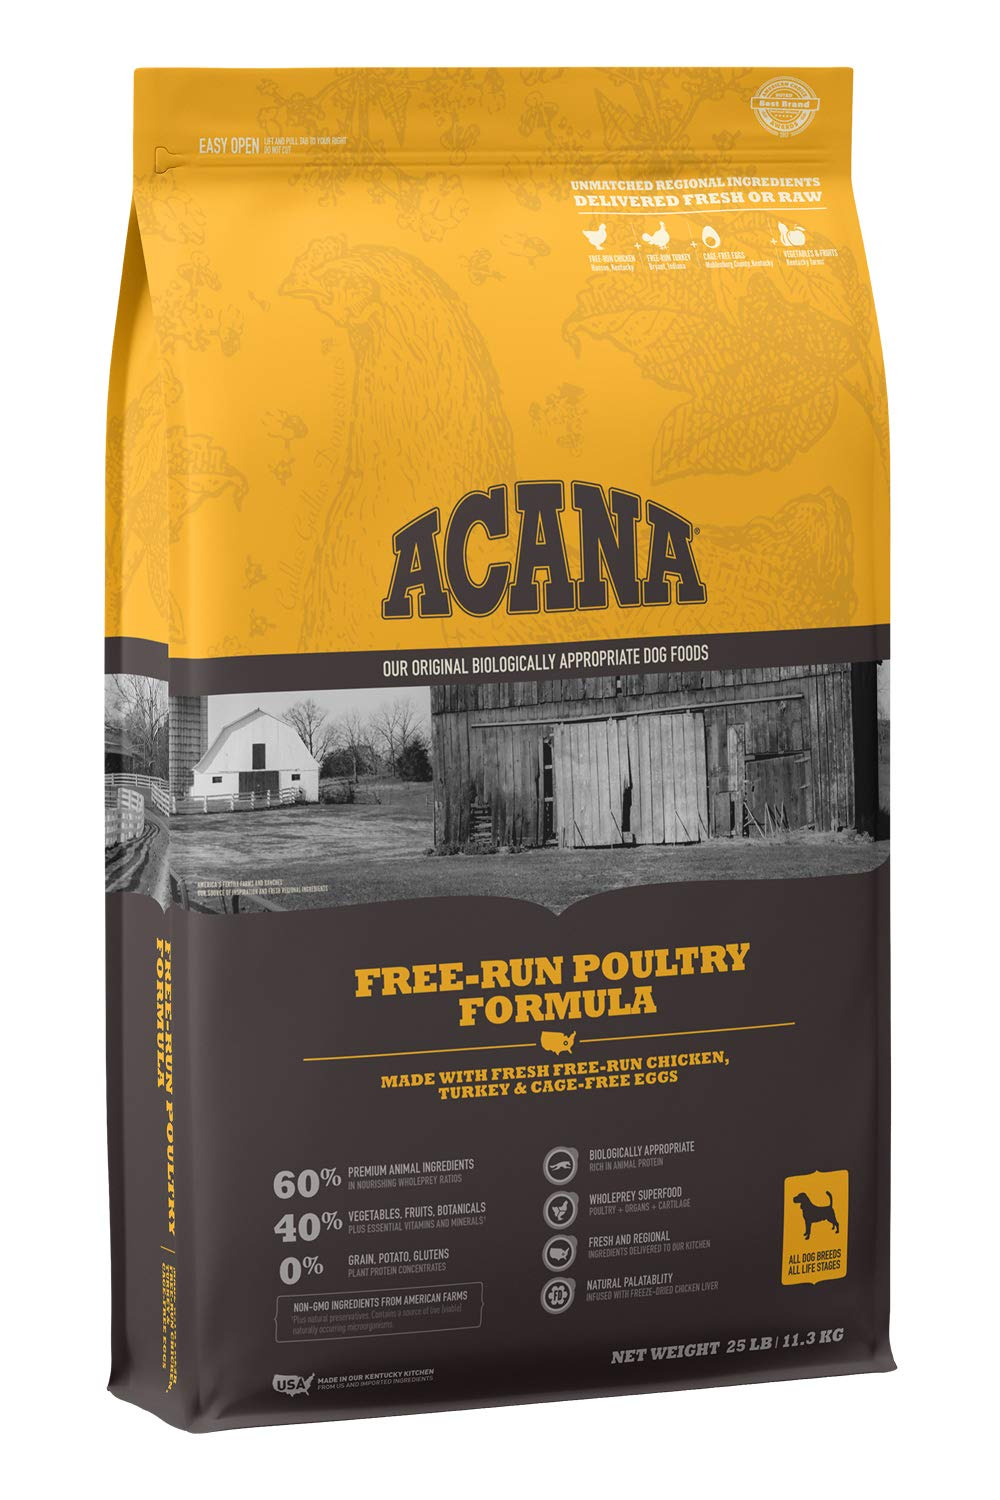 ACANA Heritage Dry Dog Food, Free-Run Poultry, Biologically Appropriate & Grain Free